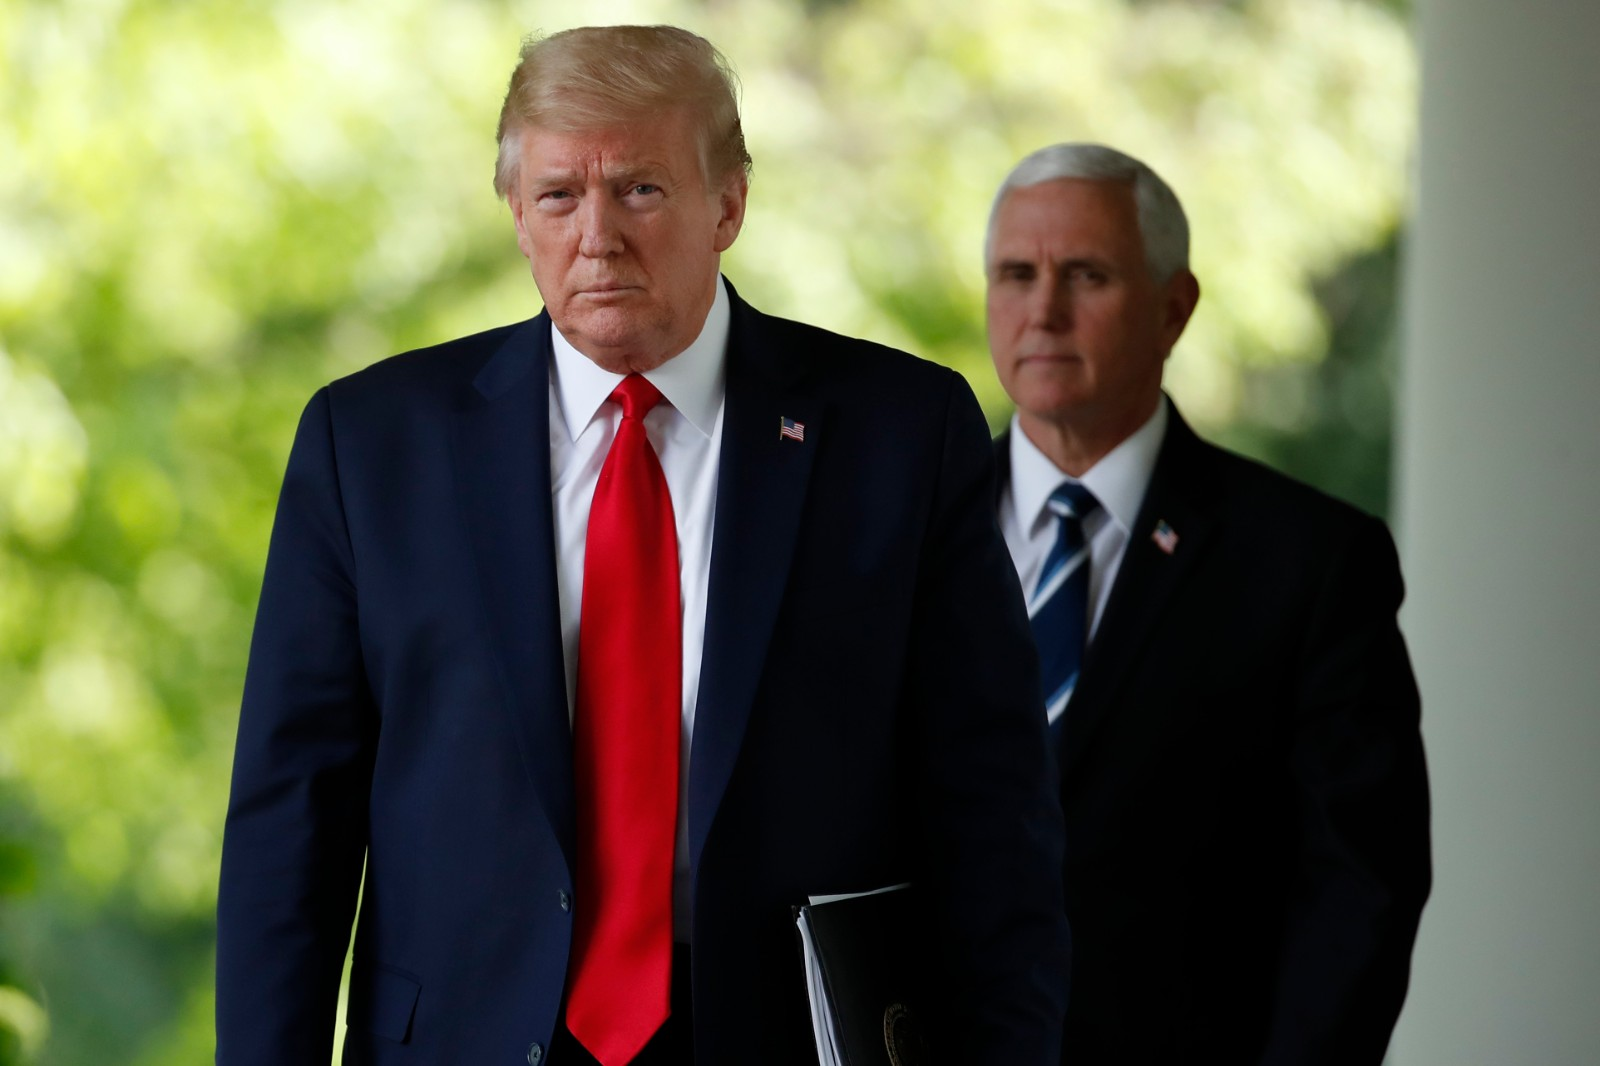 President Donald Trump and Vice President Mike Pence walk from the Oval Office to speak about the coronavirus in the Rose Garden of the White House, Monday, April 27, 2020, in Washington. (AP Photo/Alex Brandon)